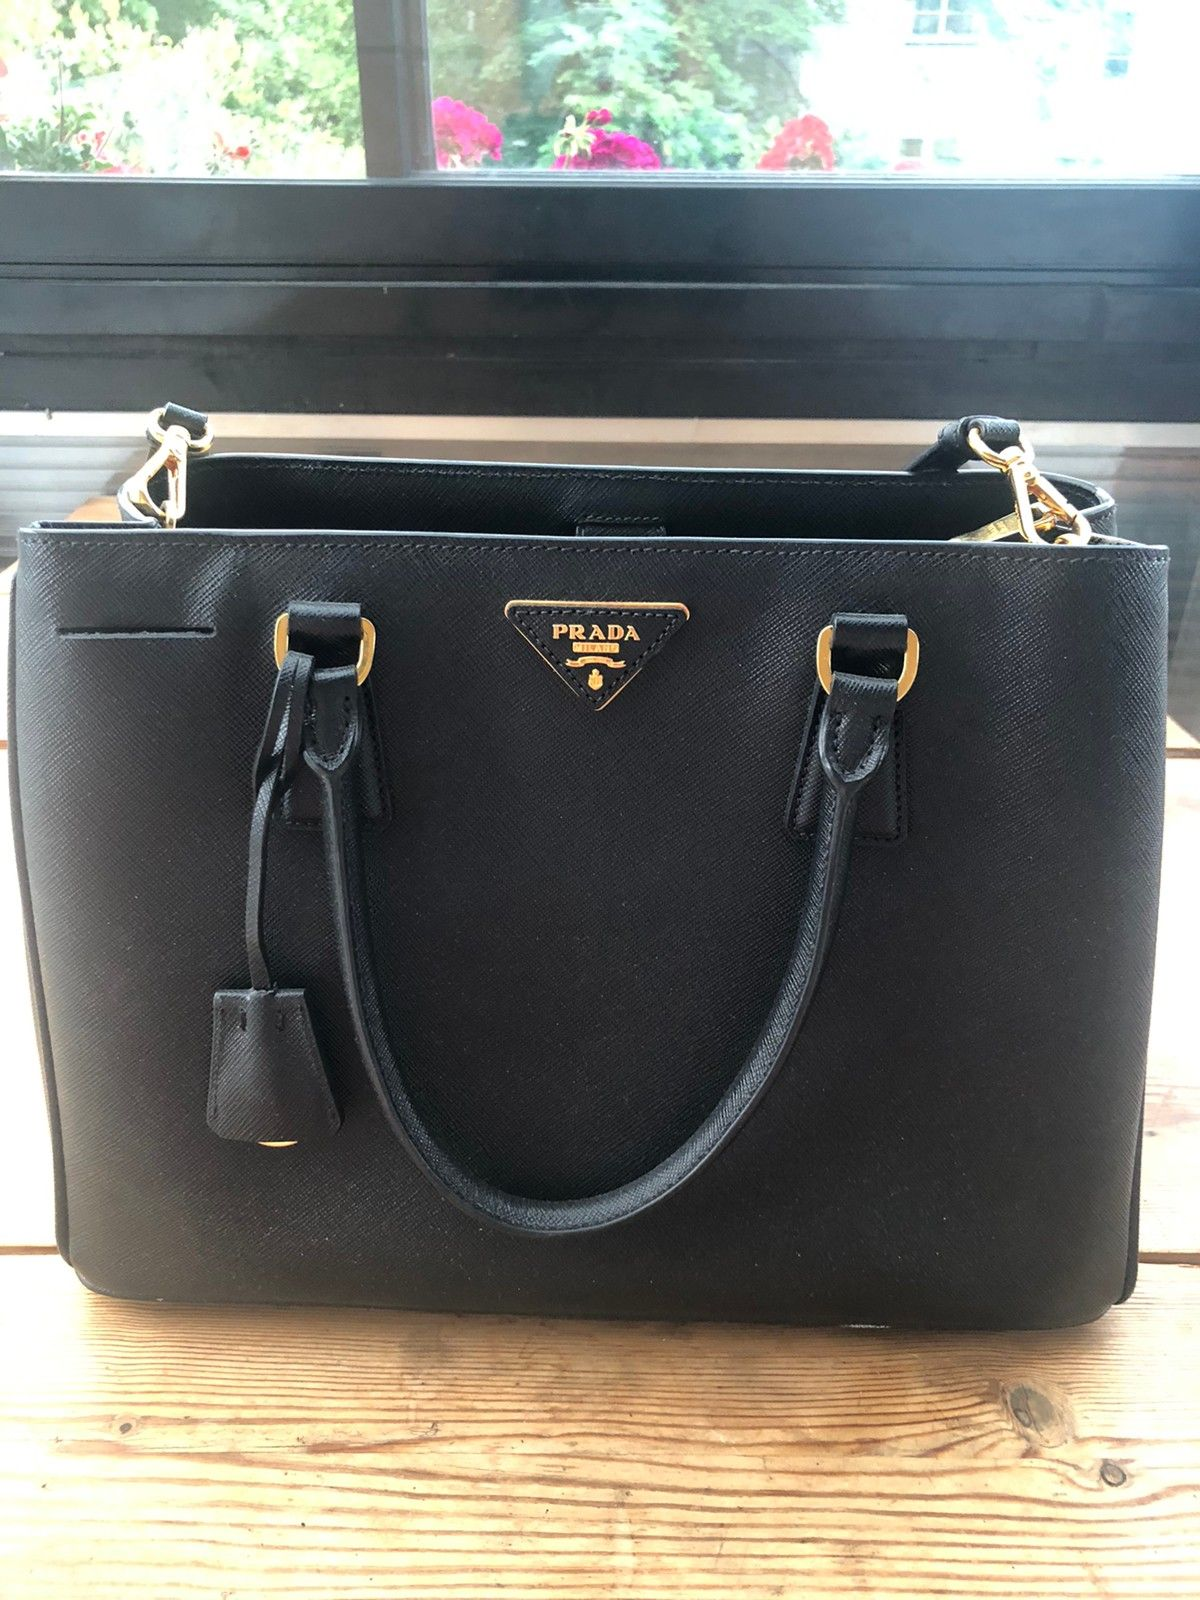 Prada Galleria Medium Saffiano veske | FINN.no